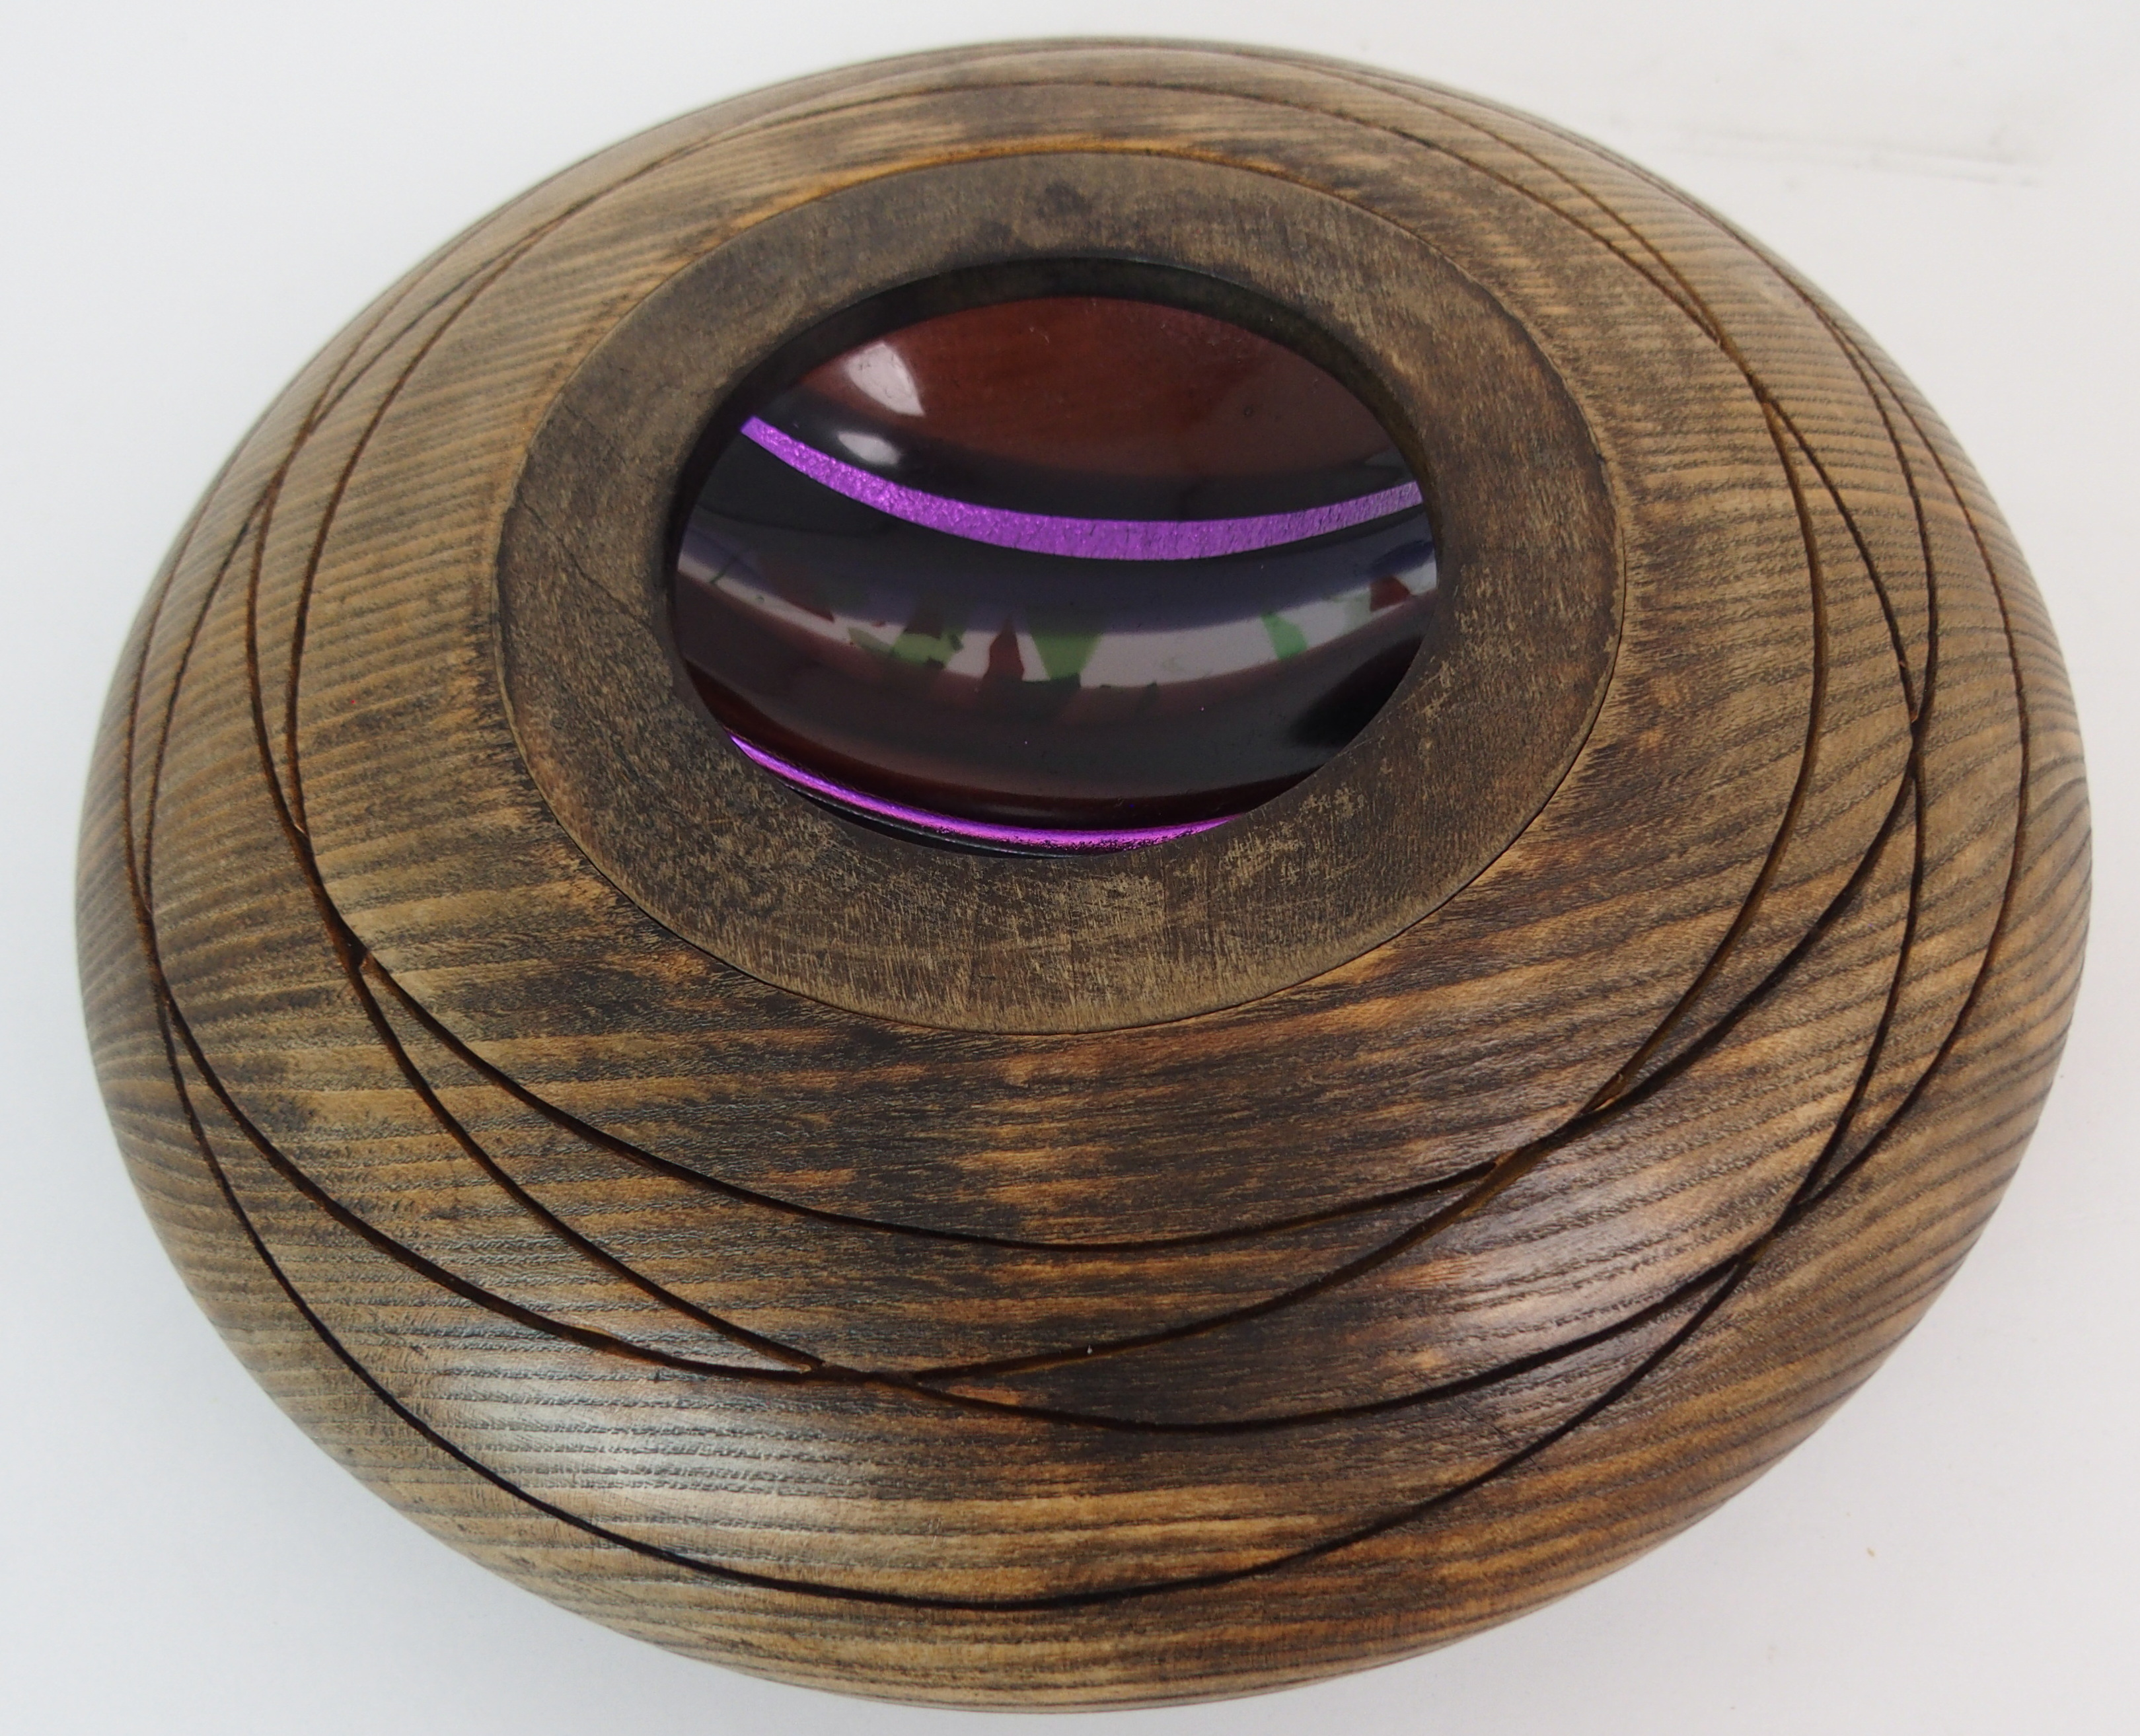 A SCOTT IRVINE WOOD AND FUSED GLASS CENTERPIECE BOWL 30cm diameter Condition Report: Available